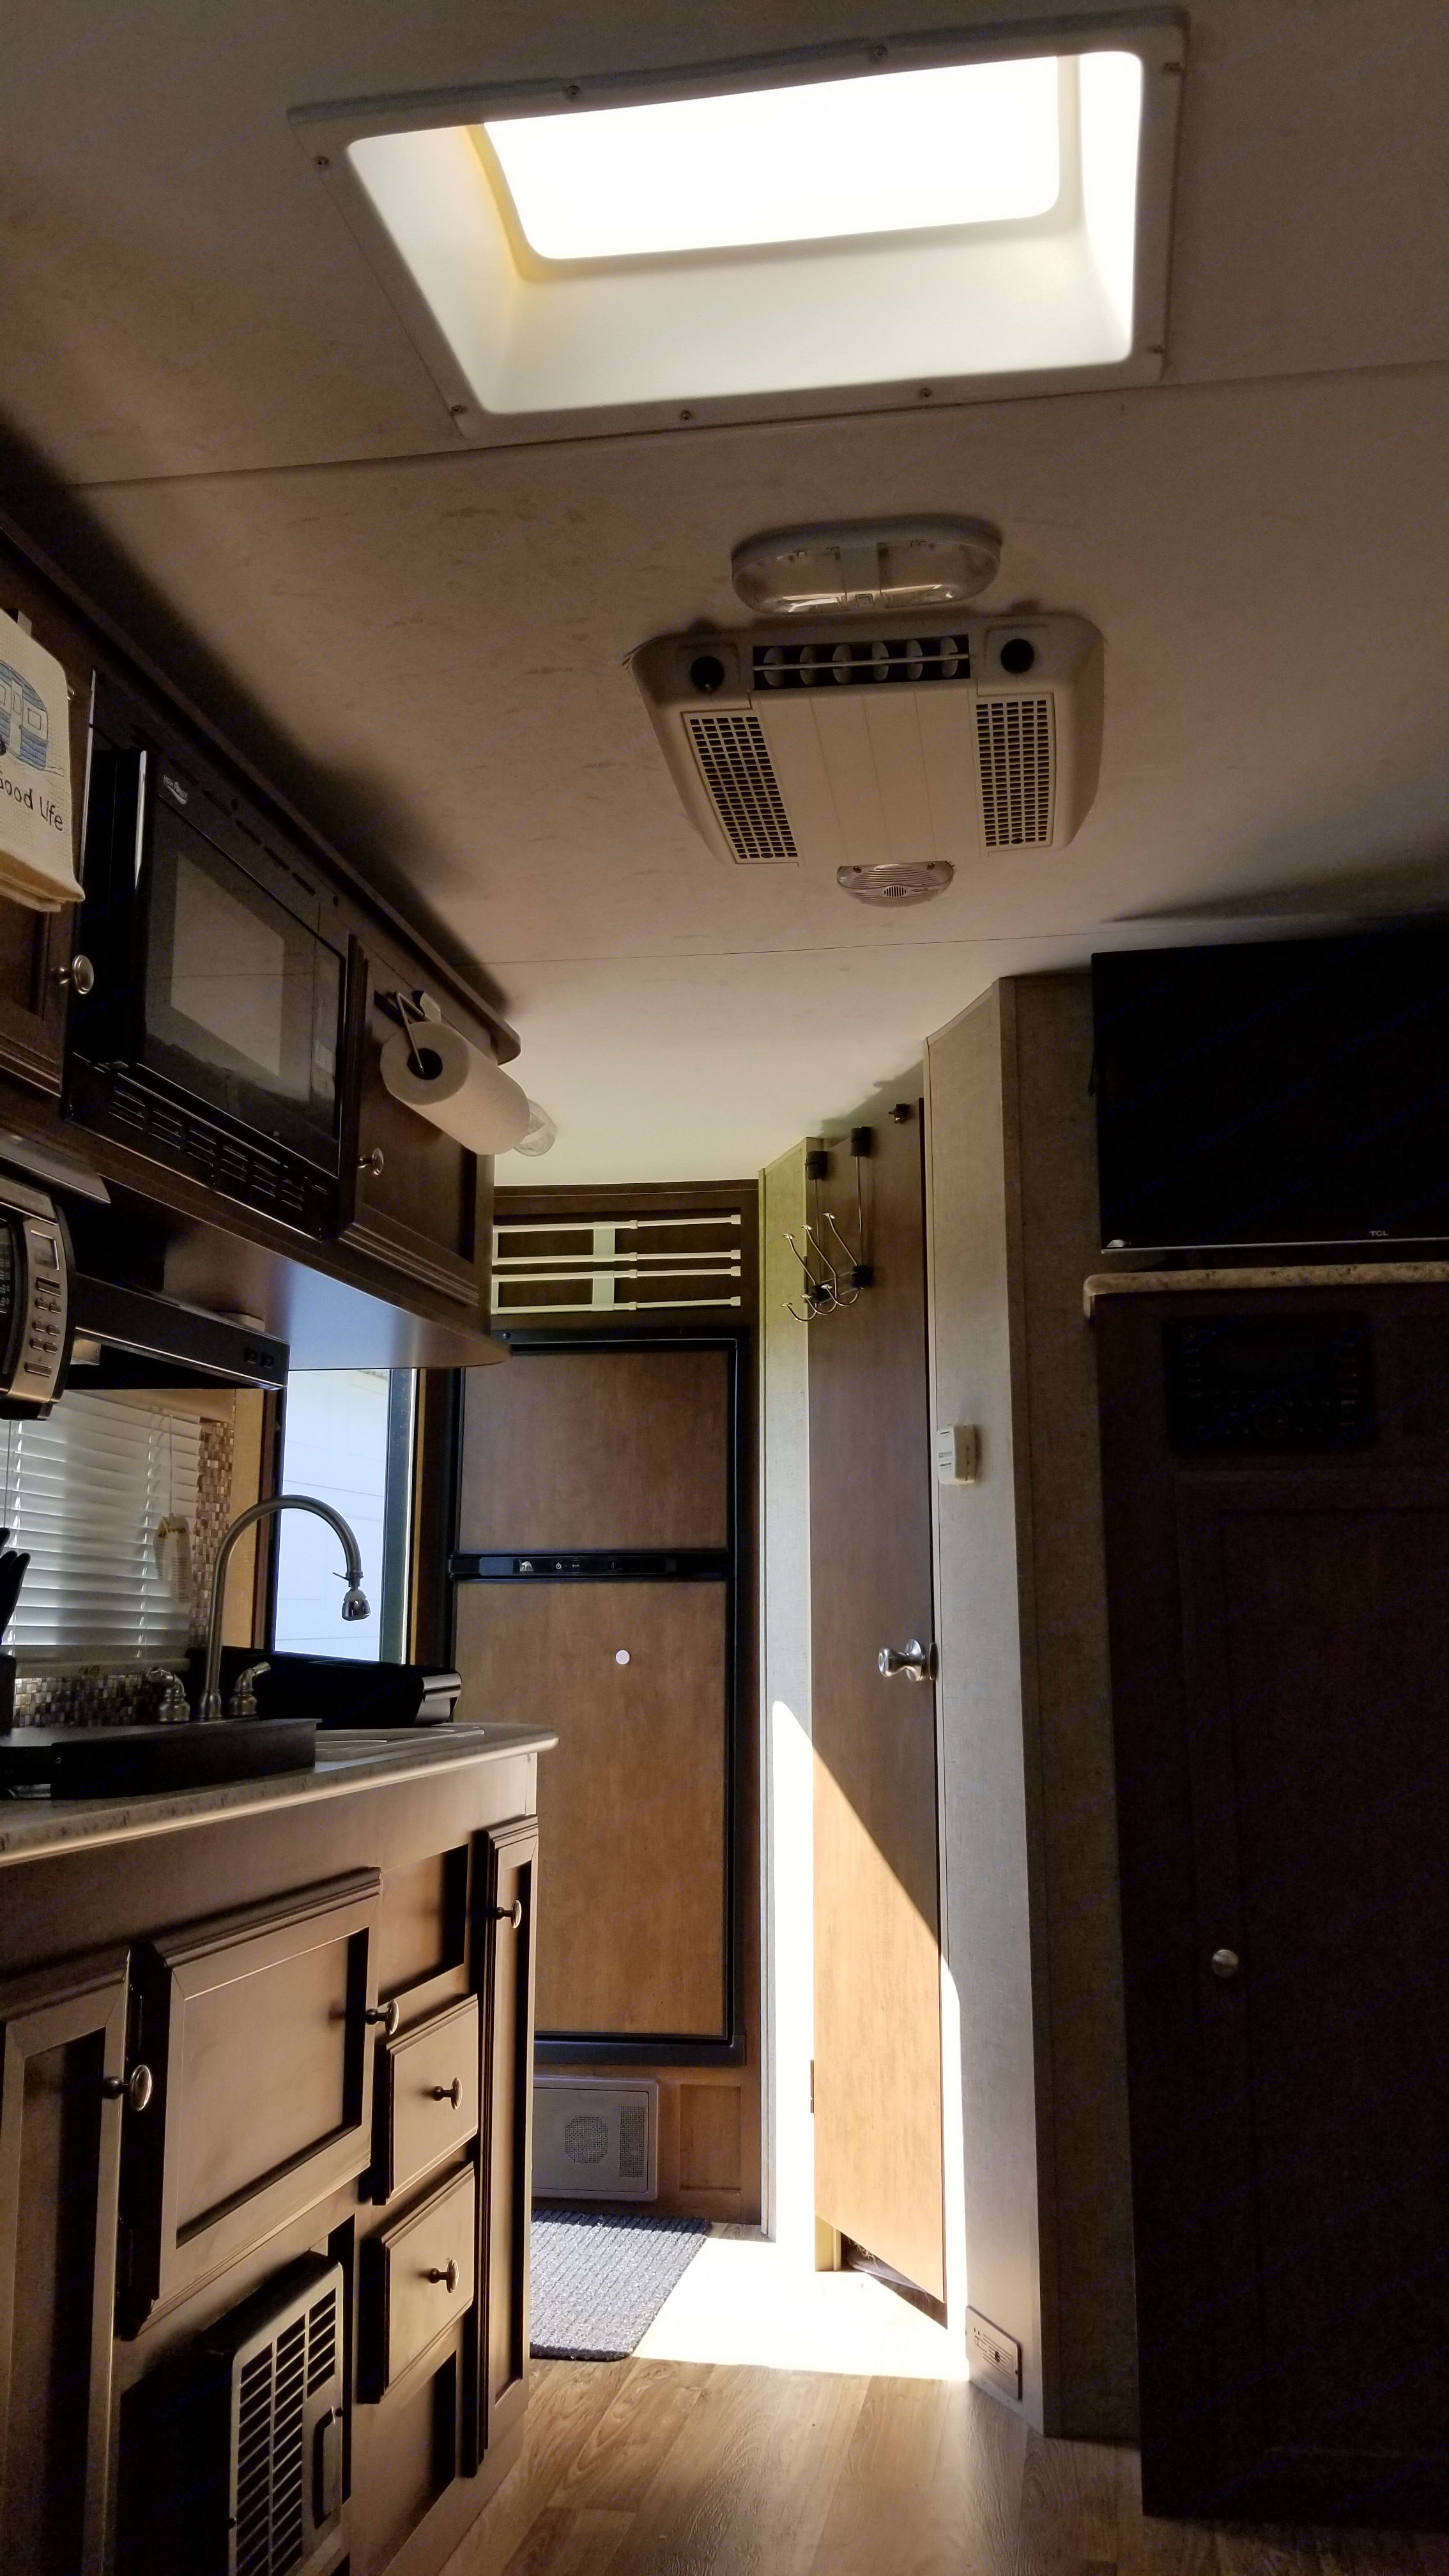 View from the bed of fridge, bathroom, kitchen, TV. Venture Rv Sonic 2015